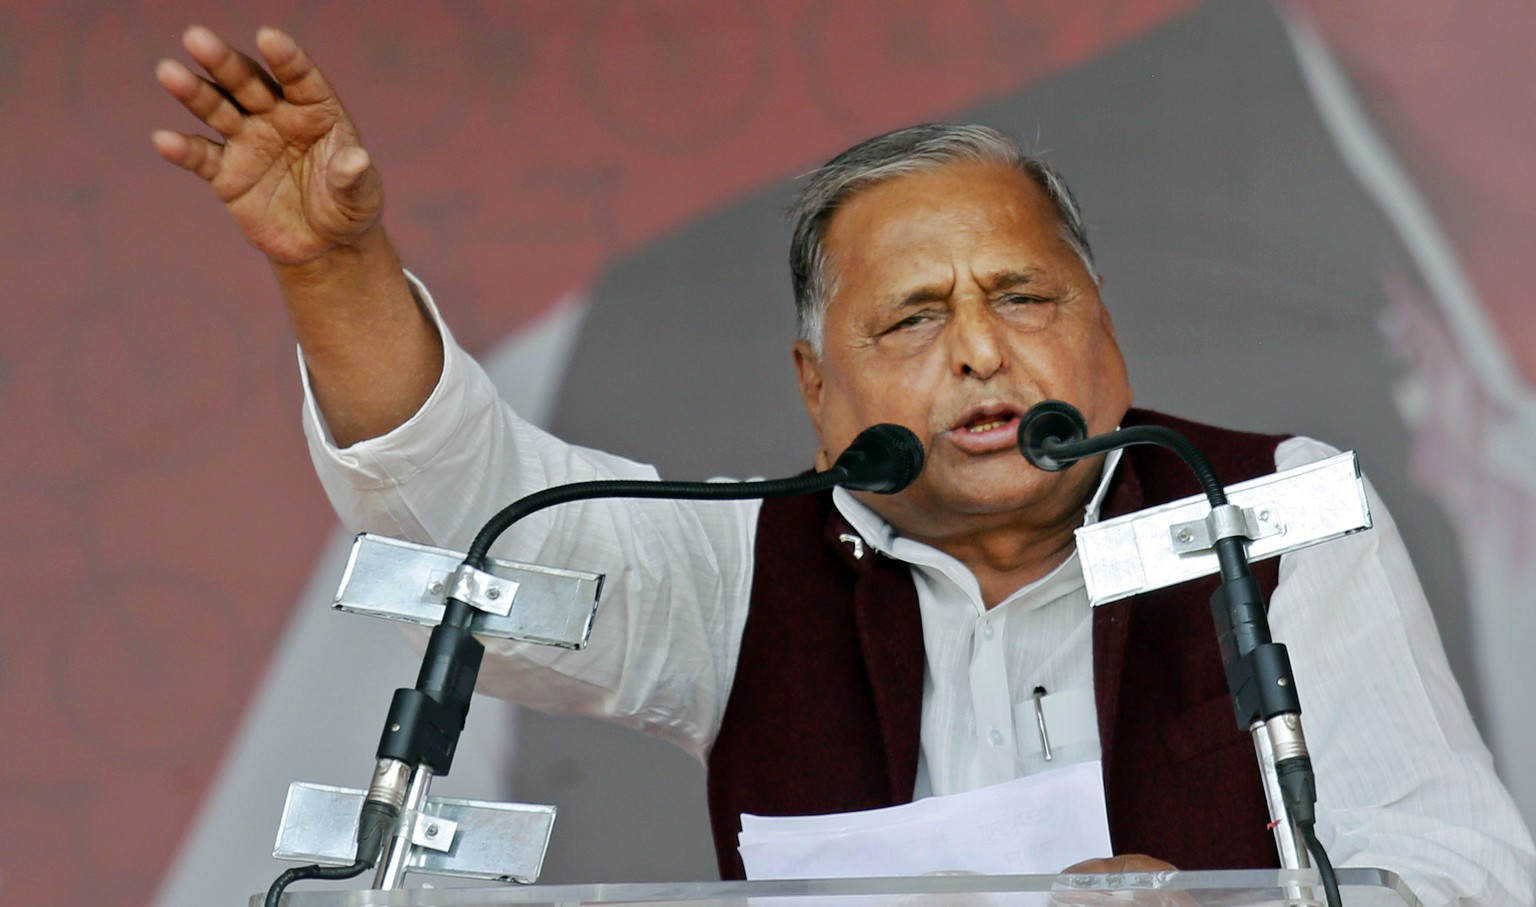 "Samajwadi Party President Mulayam Singh Yadav addresses a public rally ""Desh Banao, Desh Bachao"", or ""Make the Country, Save the Country"", in Allahabad, India, Sunday, March 2, 2014. India's biggest state, Uttar Pradesh, has 80 Loksabha, or lower parliamentary house, seats in the general elections later this year. Portrait of party leader Mulayam Singh Yadav is seen in the background. (AP Photo/Rajesh Kumar Singh)"